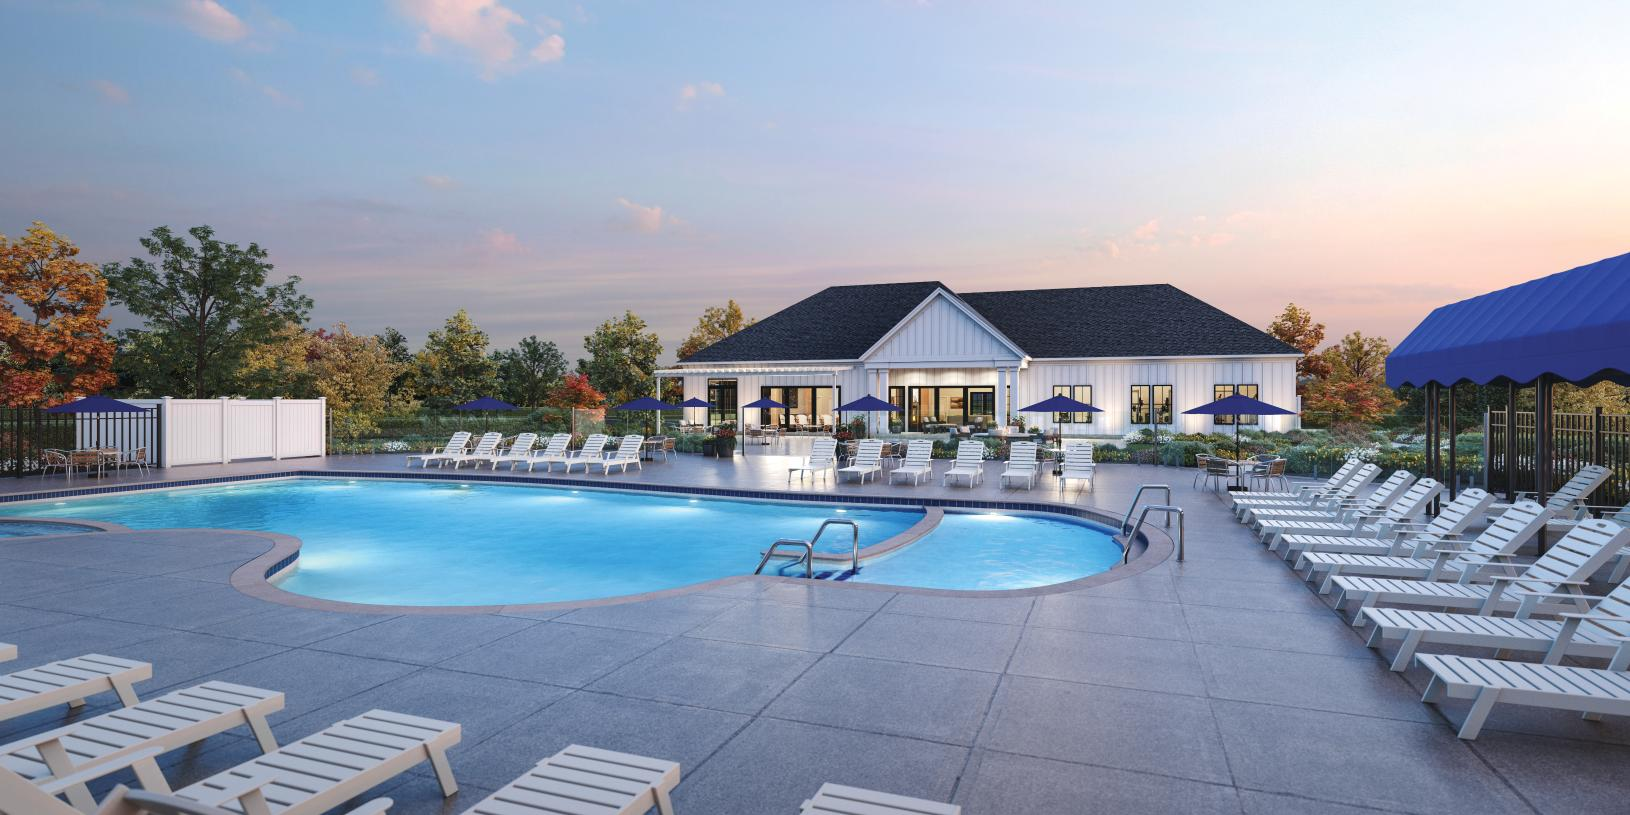 Future on-site community clubhouse and amenities